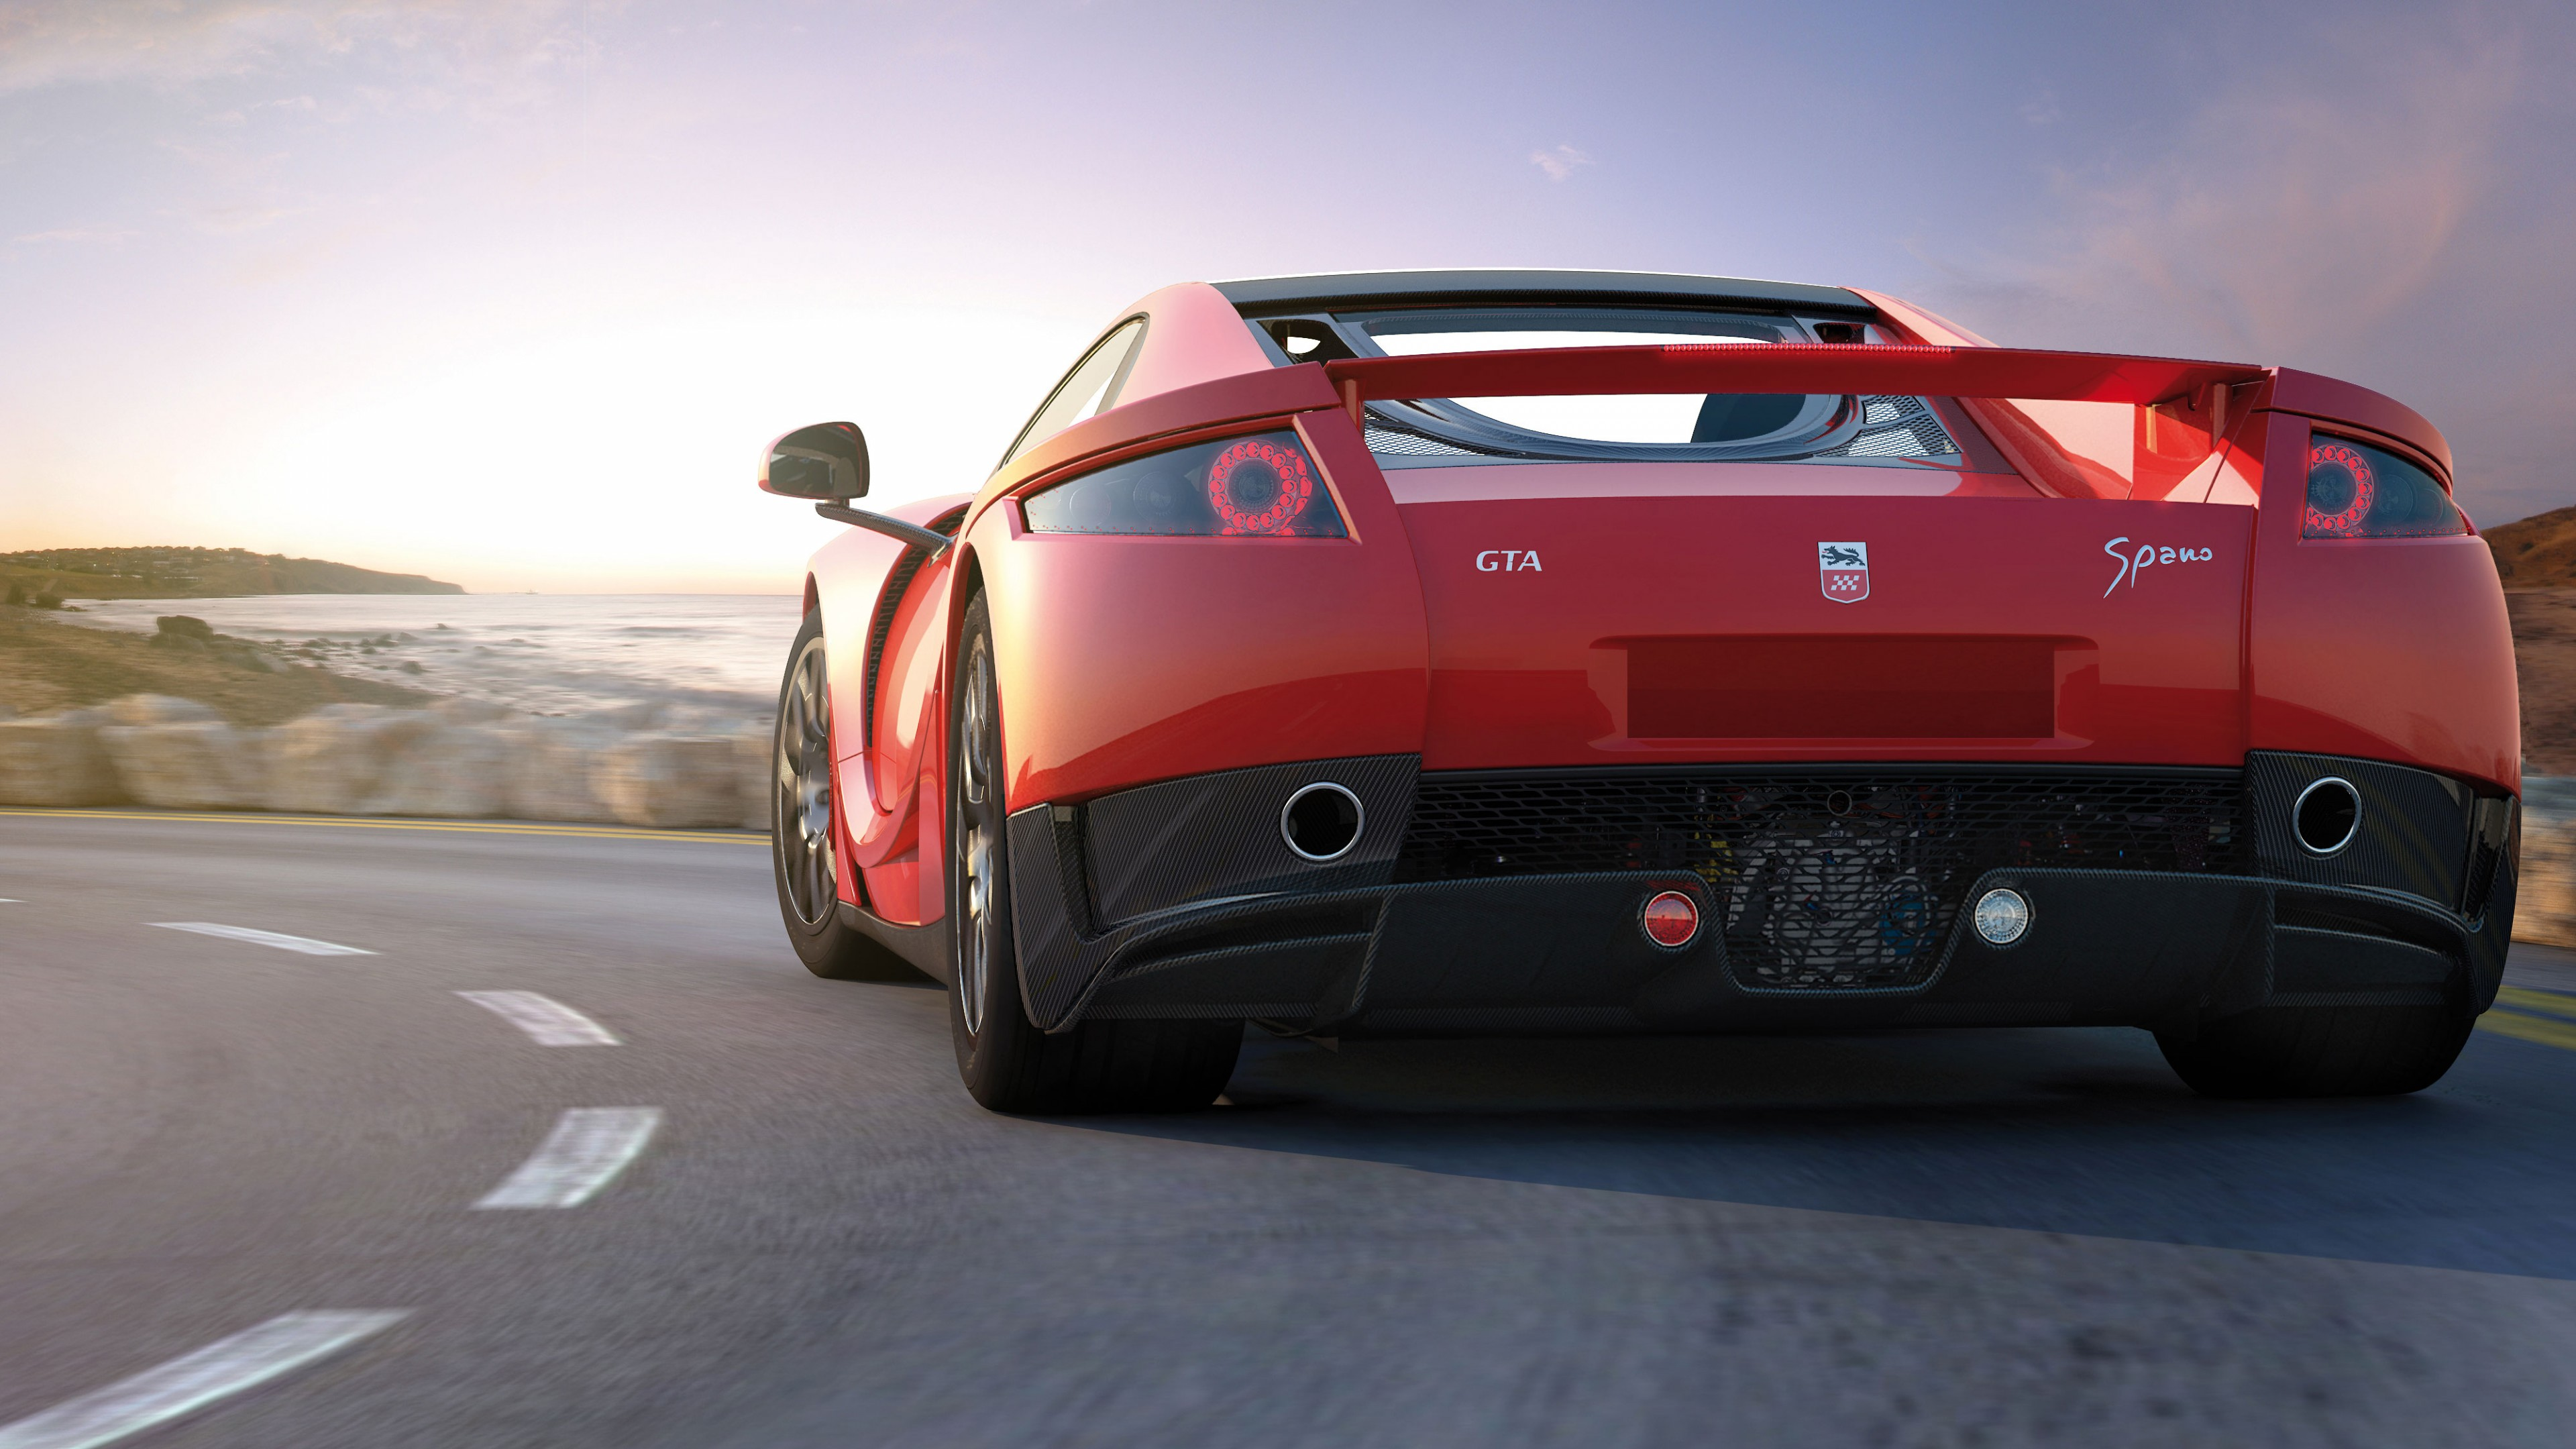 Wallpaper GTA Spano Supercar Coupe Red Cars Amp Bikes 6121